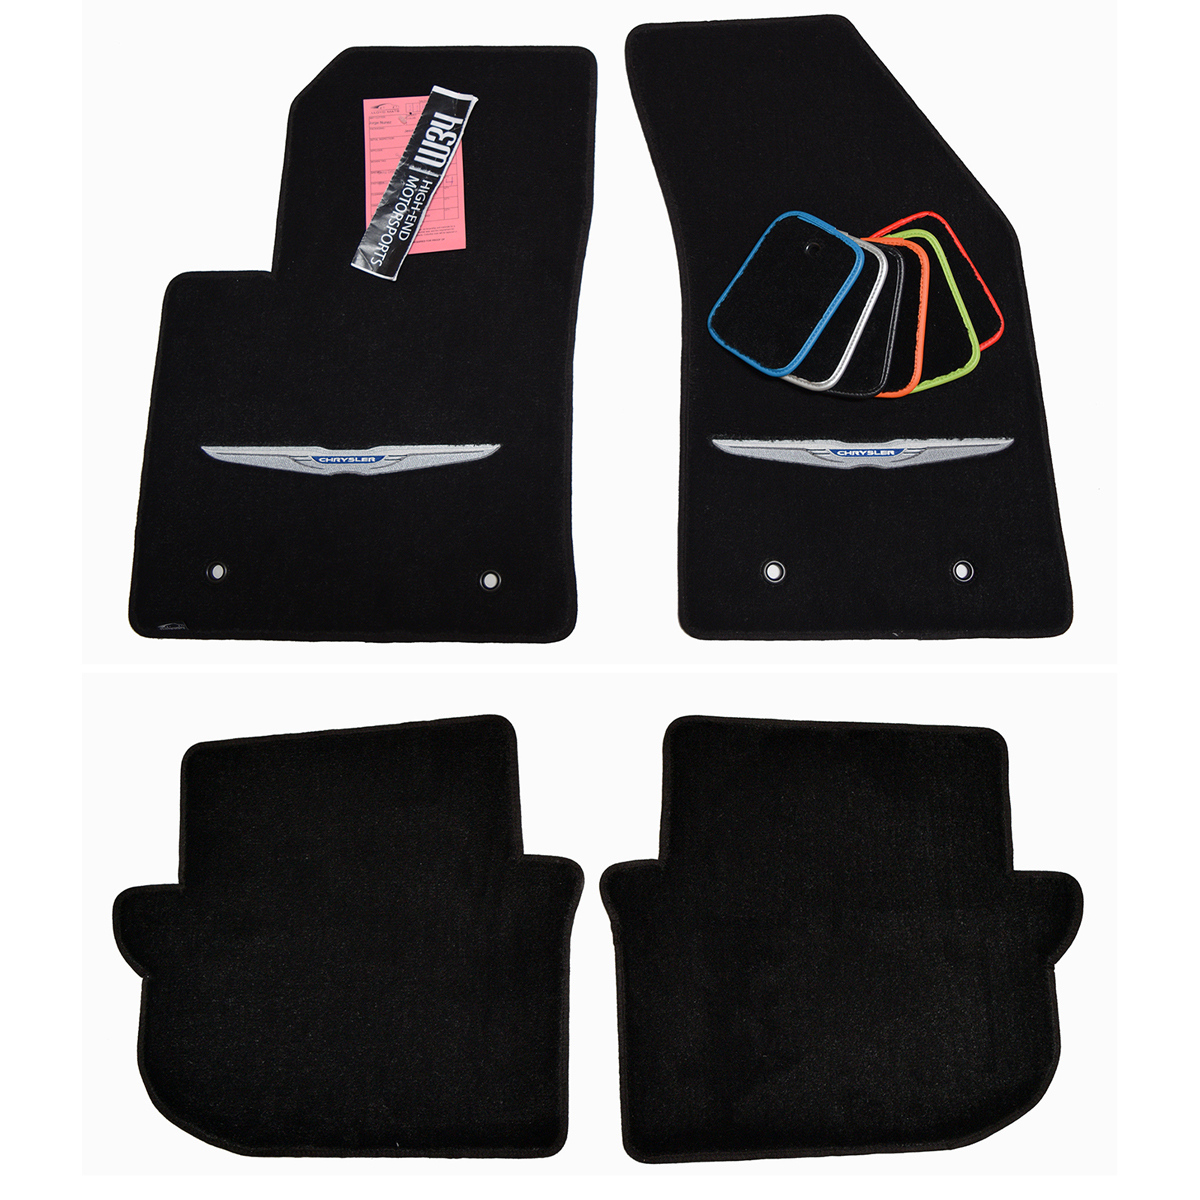 Chrysler 300 Carpet Floor Mats